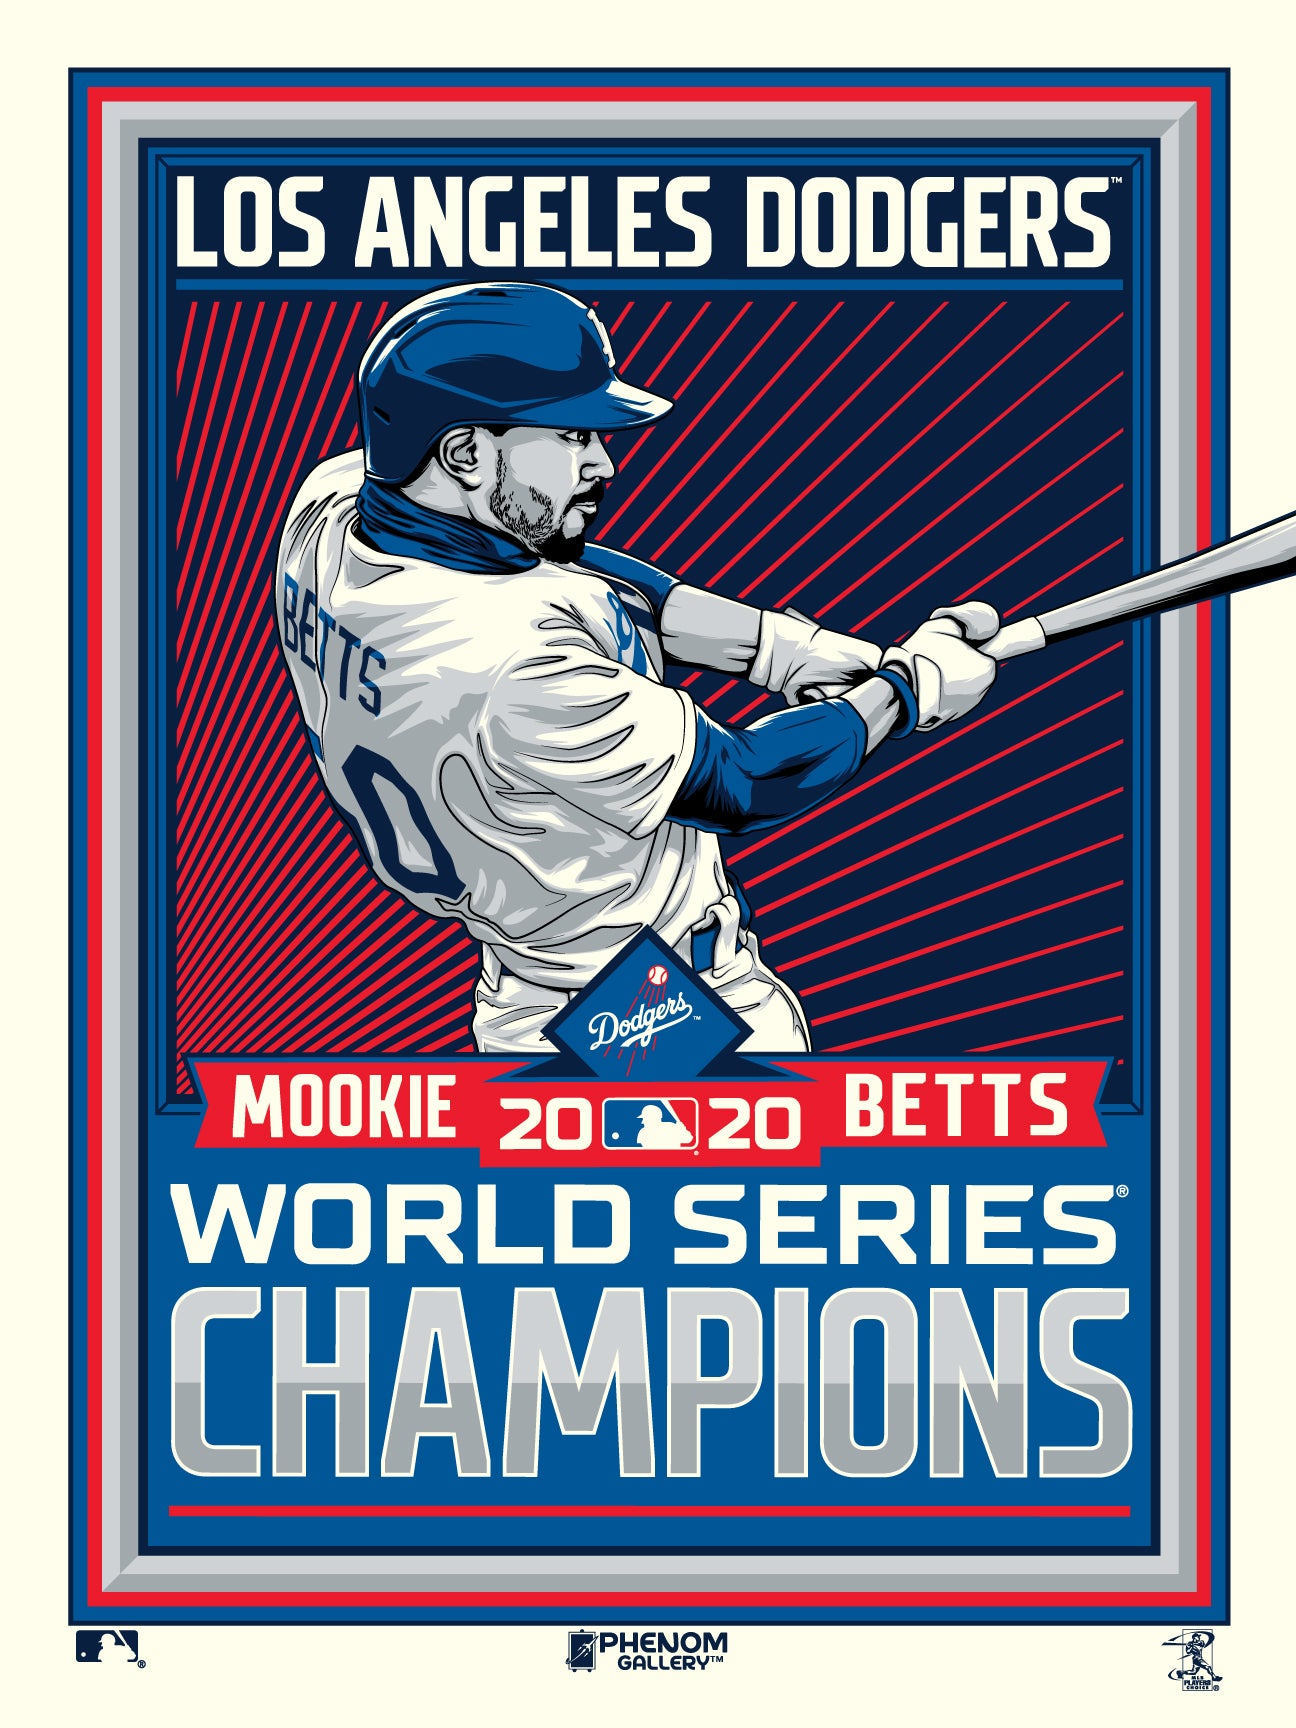 Los Angeles Dodgers Mookie Betts 2020 World Series Champs Print